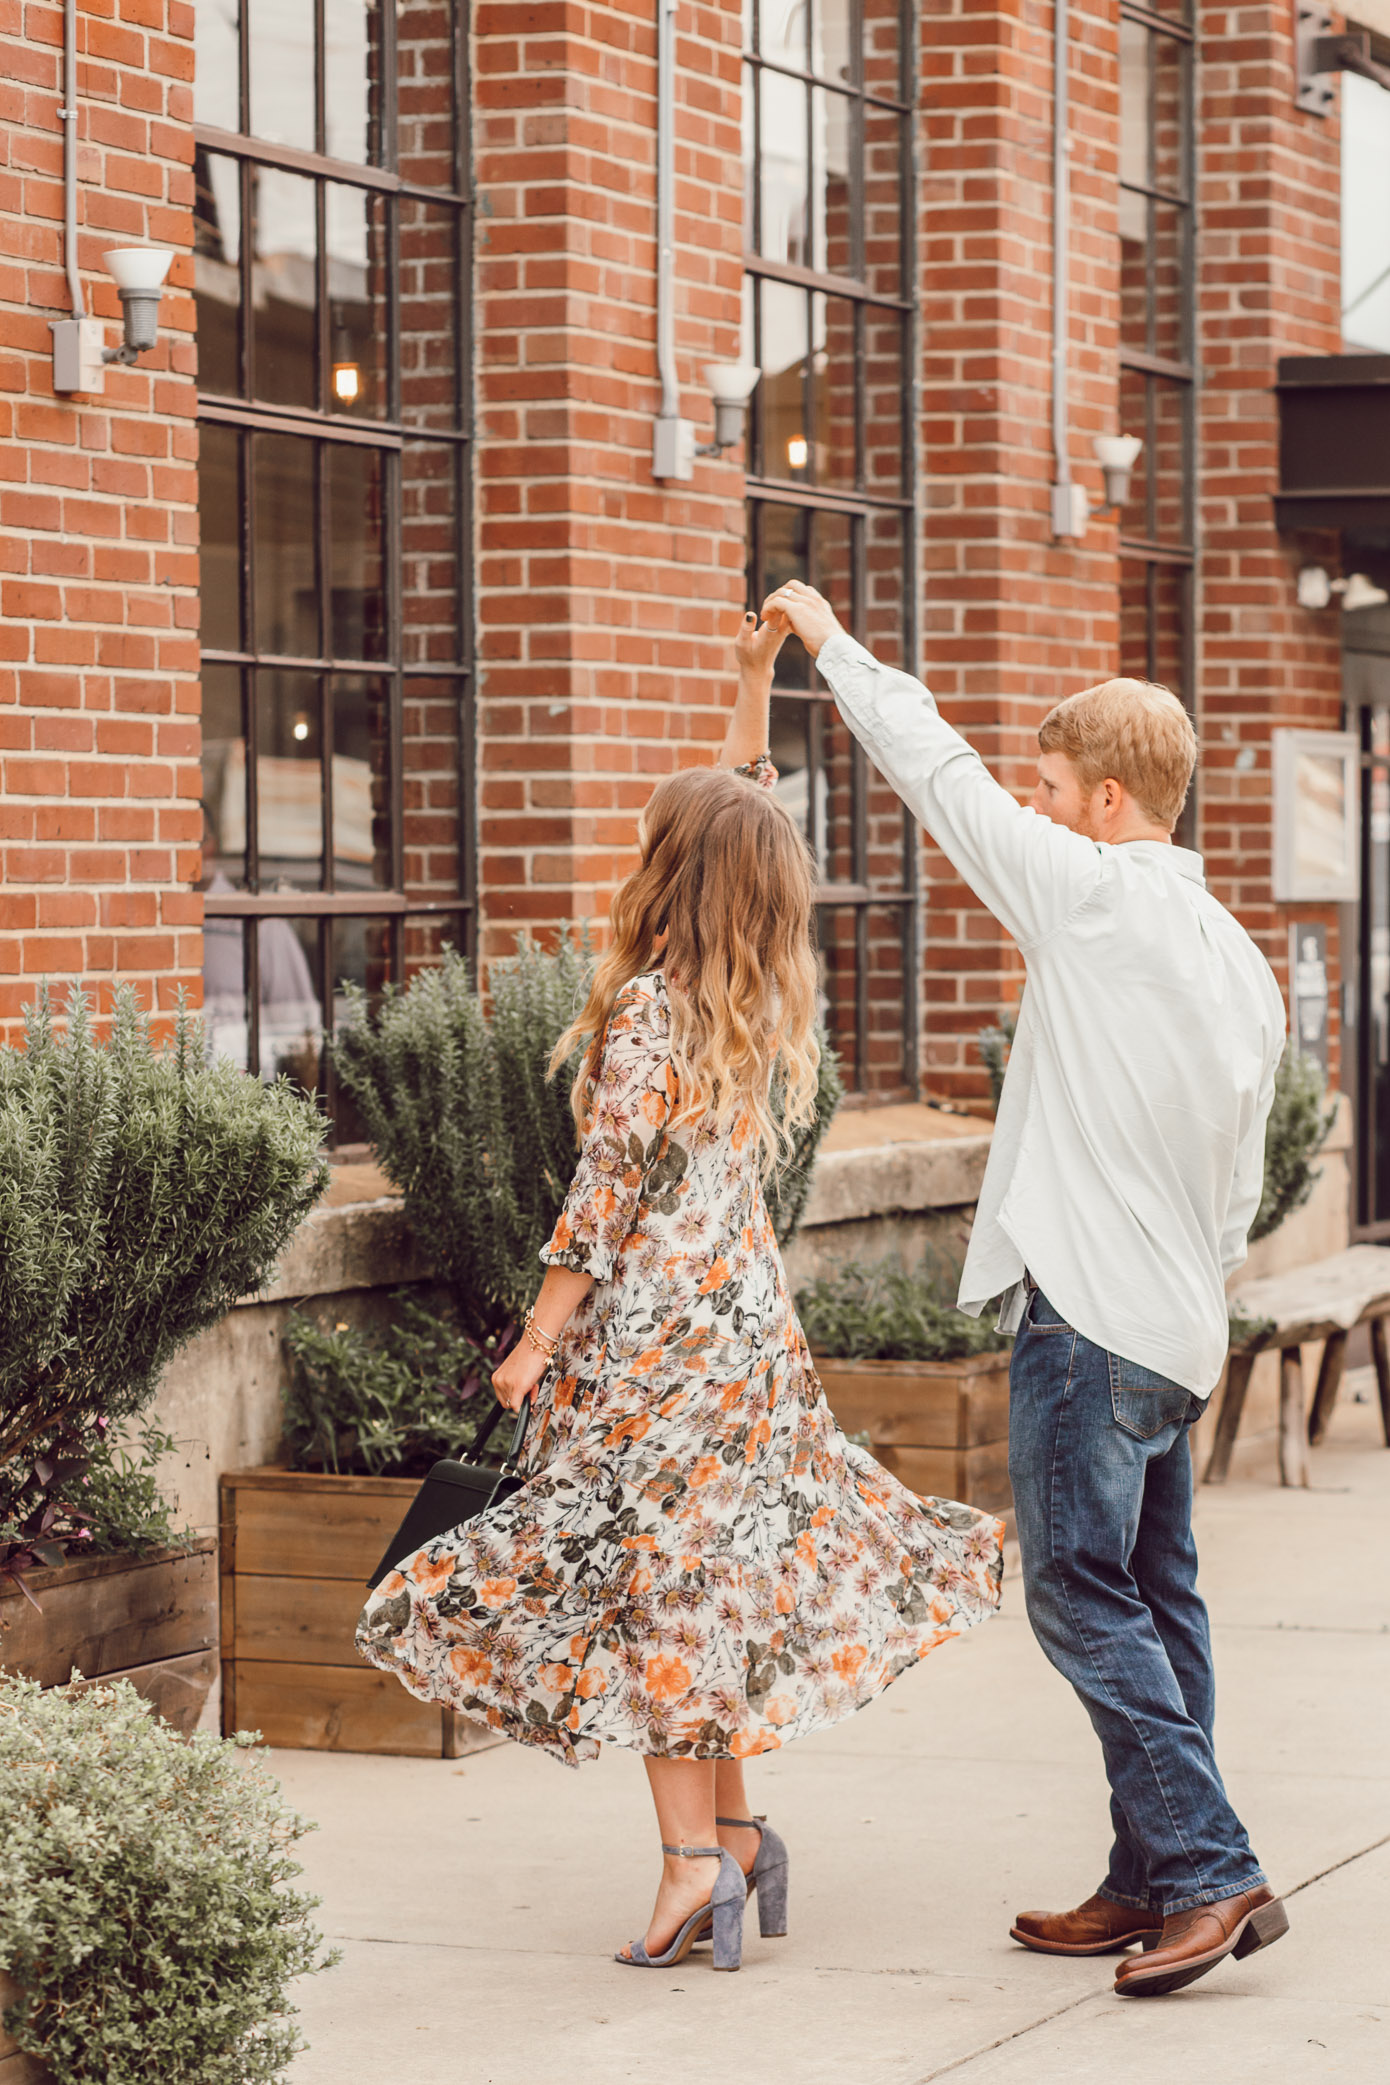 Fall Floral Midi Dress for Date Night | Date Night Beauty Tips featured on Louella Reese Life & Style Blog